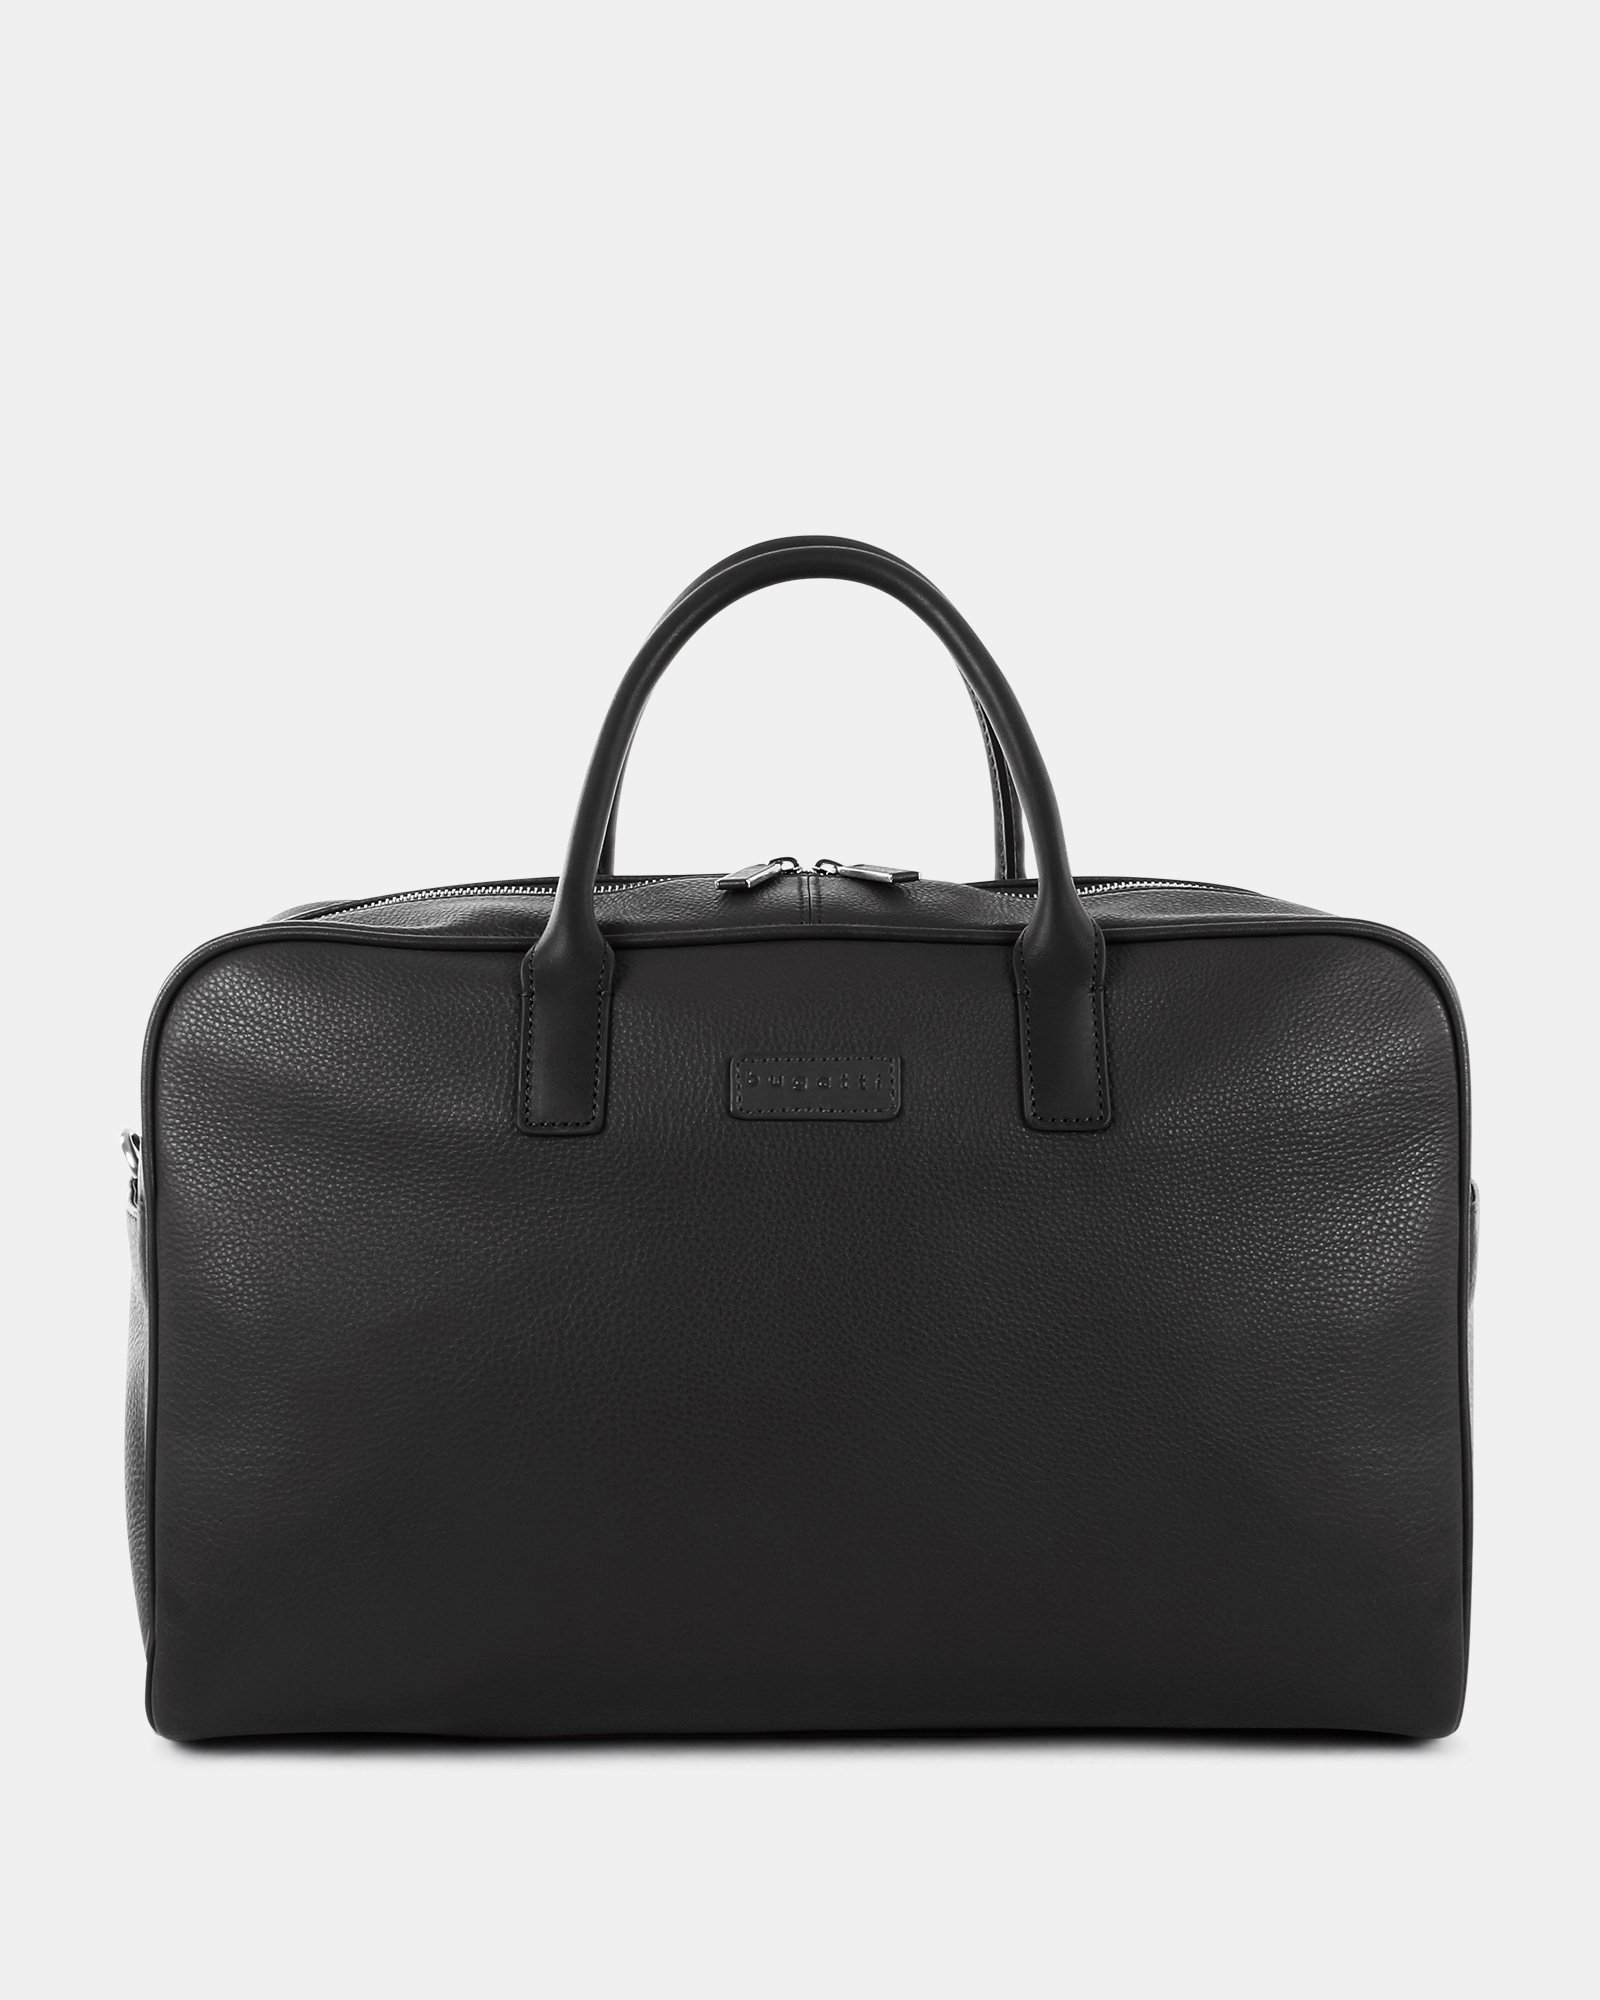 """HORIZON - Leather Duffle Bag with 14"""" laptop compartment - Black - Bugatti - Zoom"""